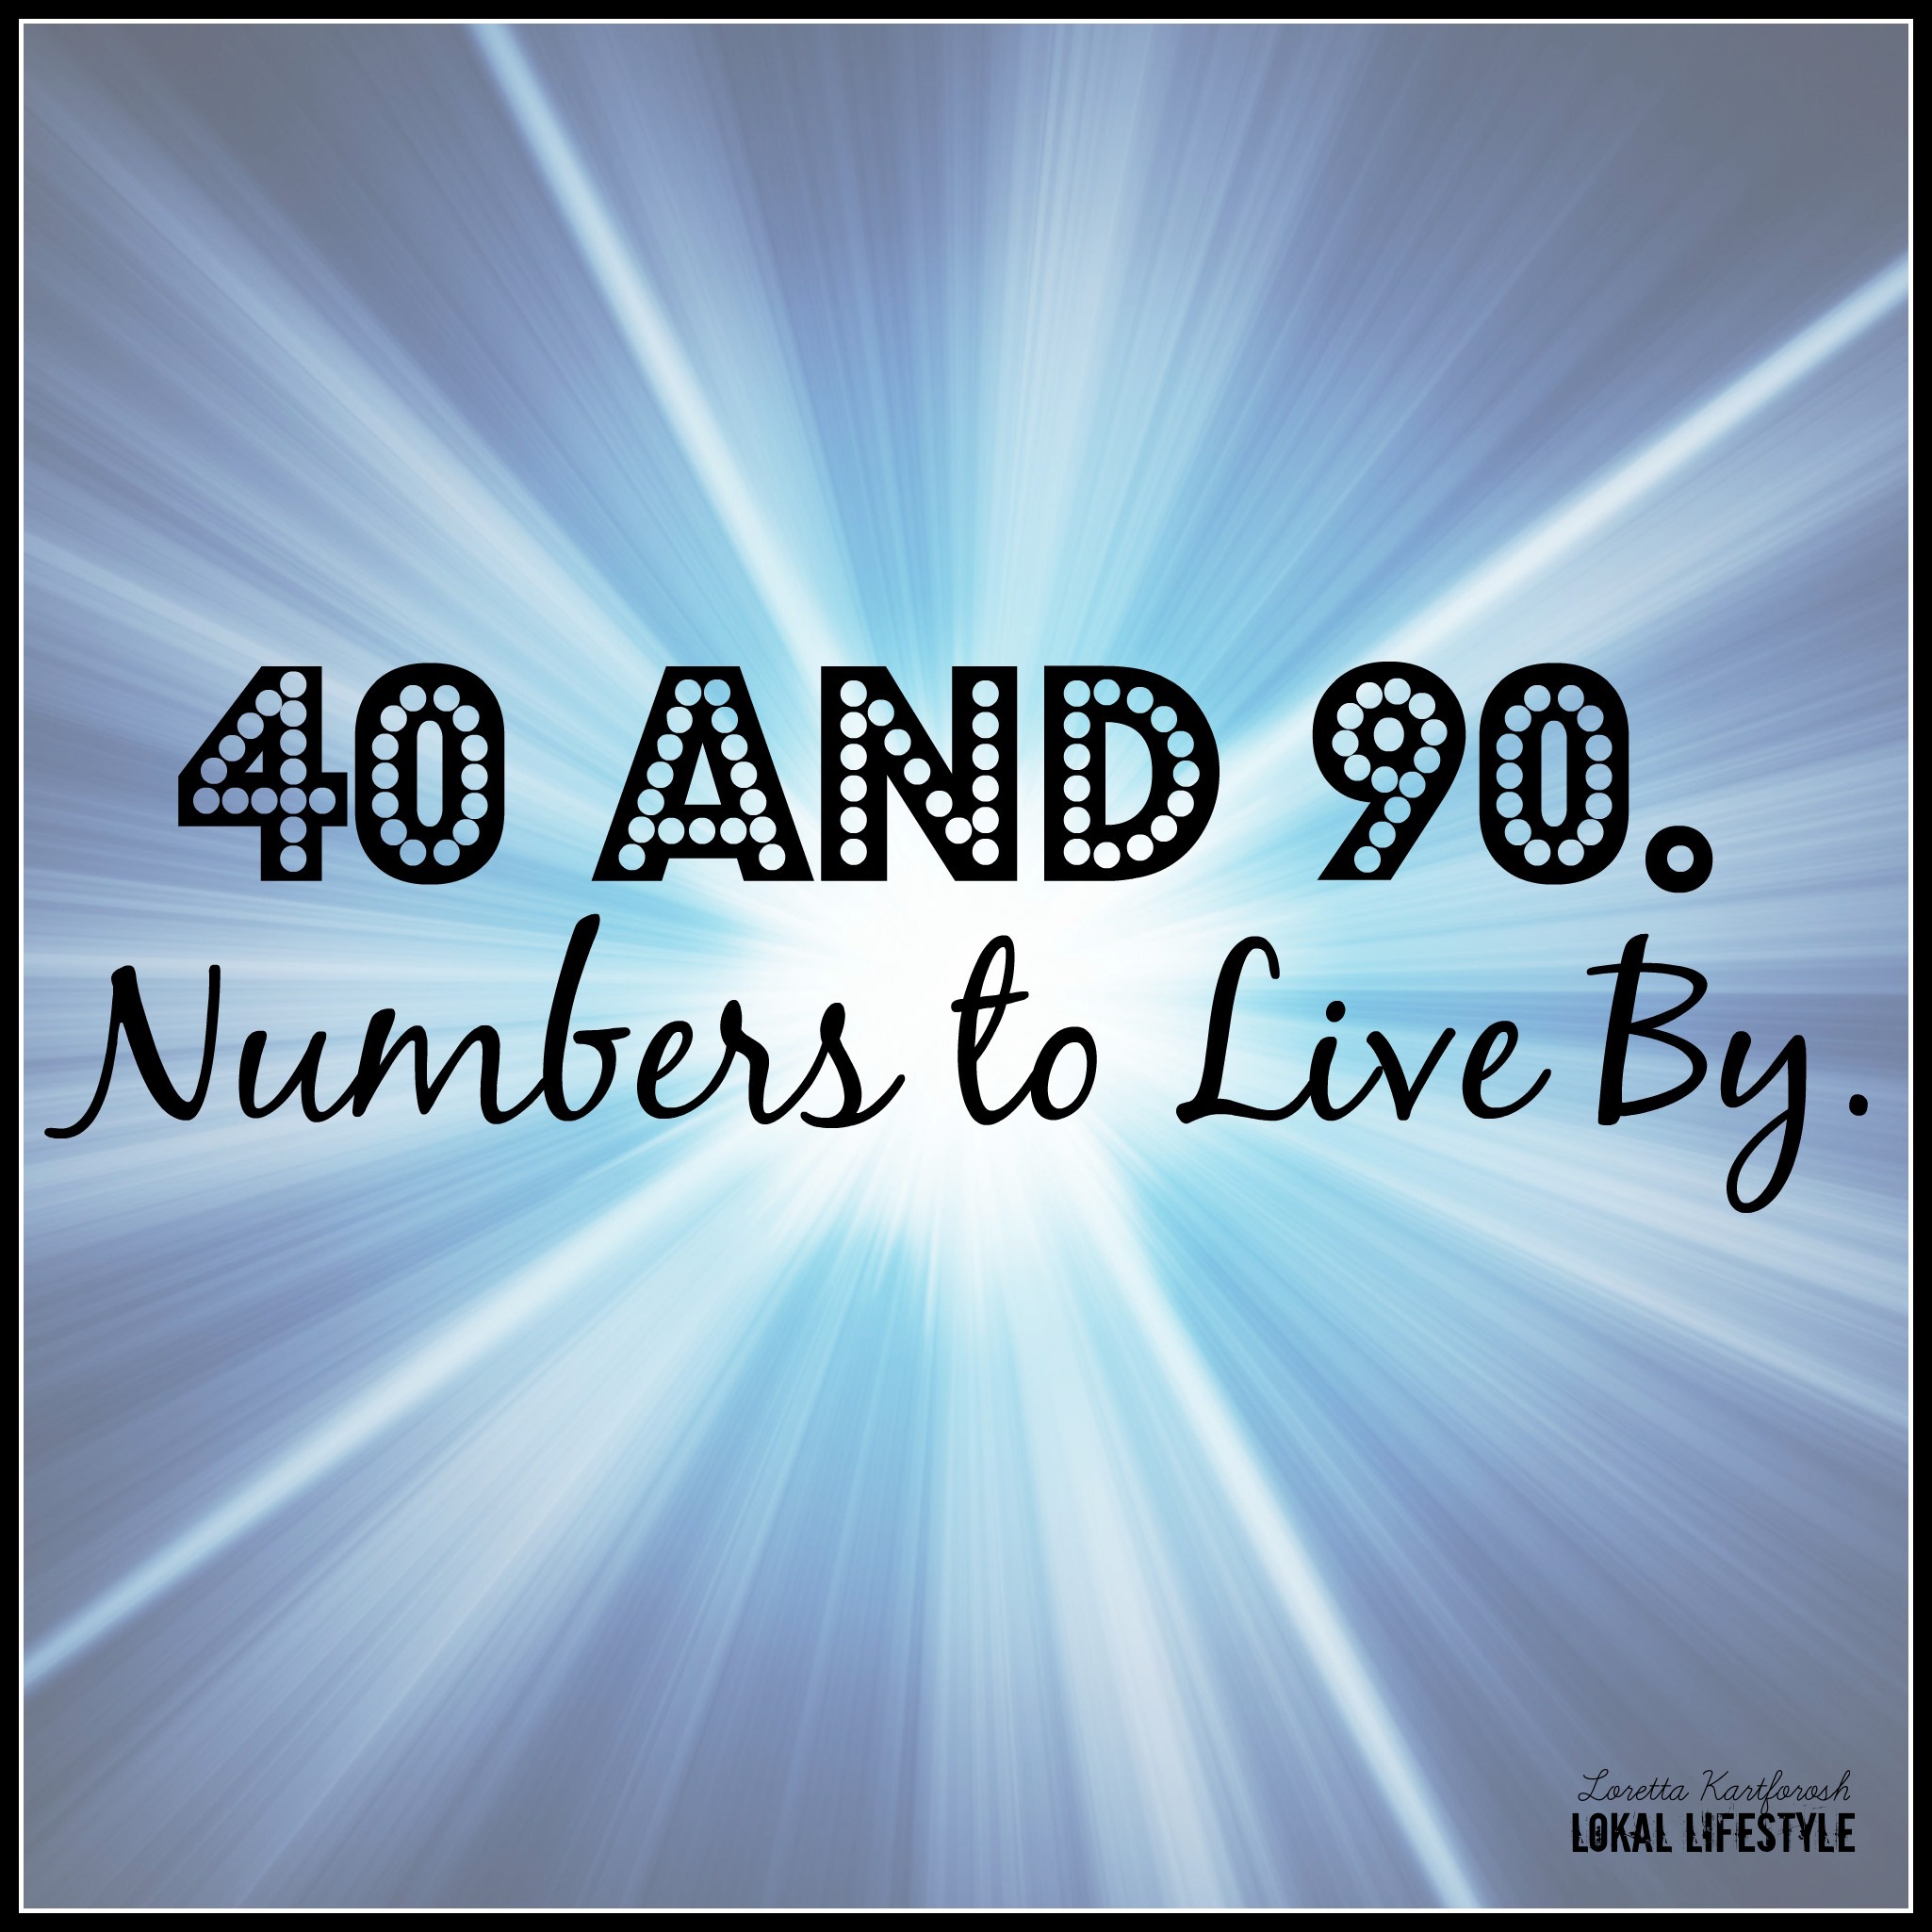 40 and 90. Numbers to Live By.